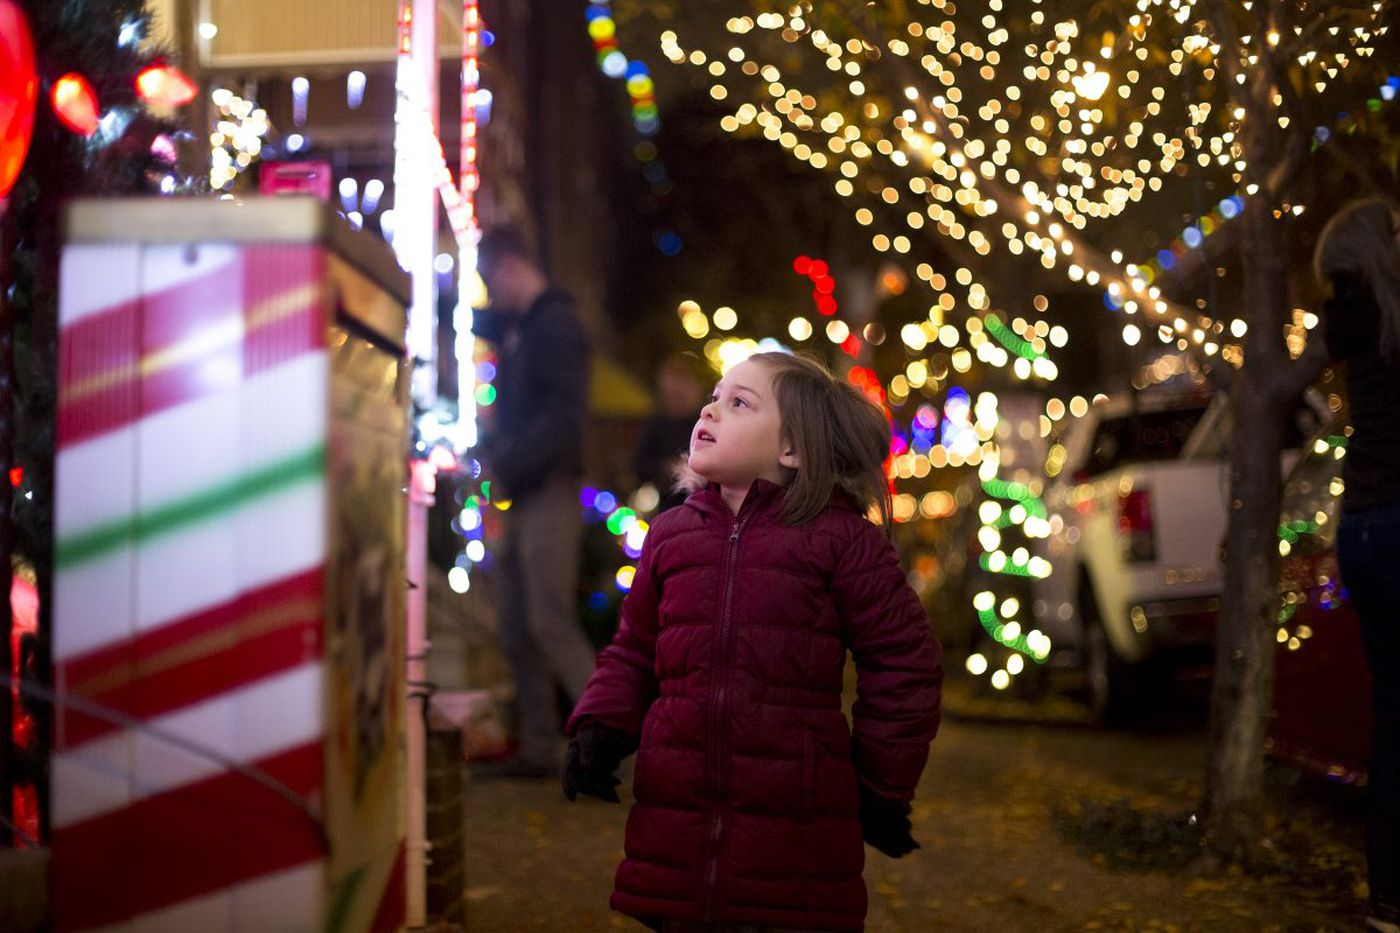 9 must-visit spots for holiday lights in the Philadelphia area